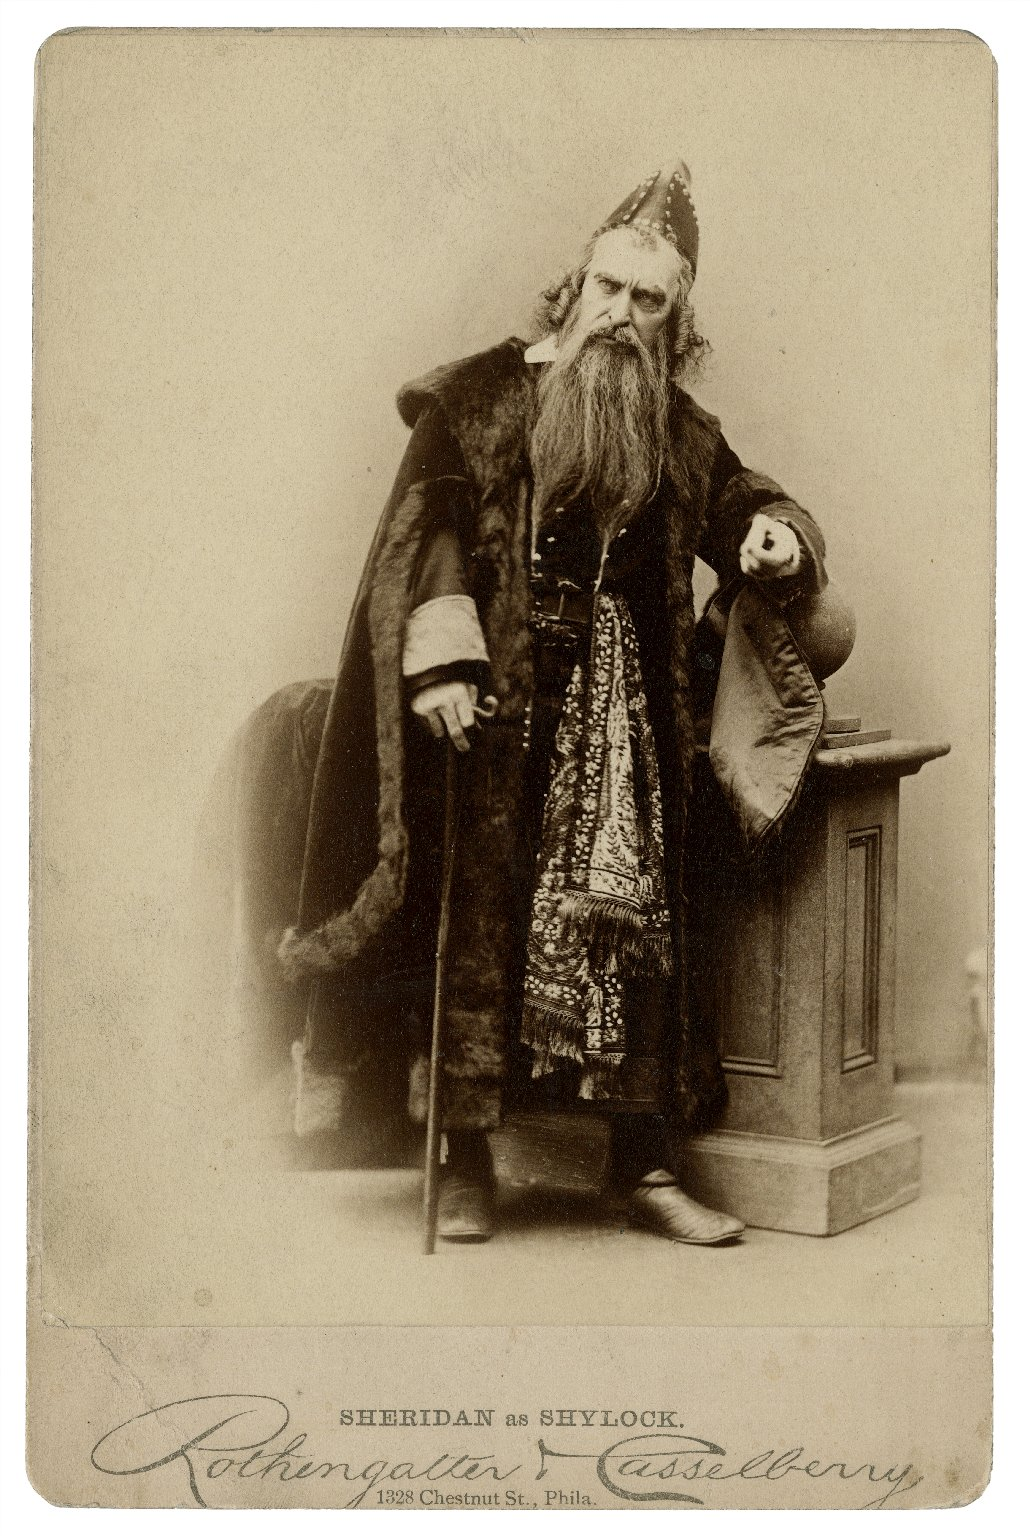 Sheridan as Shylock [in Shakespeare's Merchant of Venice] [graphic] / Rothengatter & Casselberry, 1328 Chestnut St., Phila.